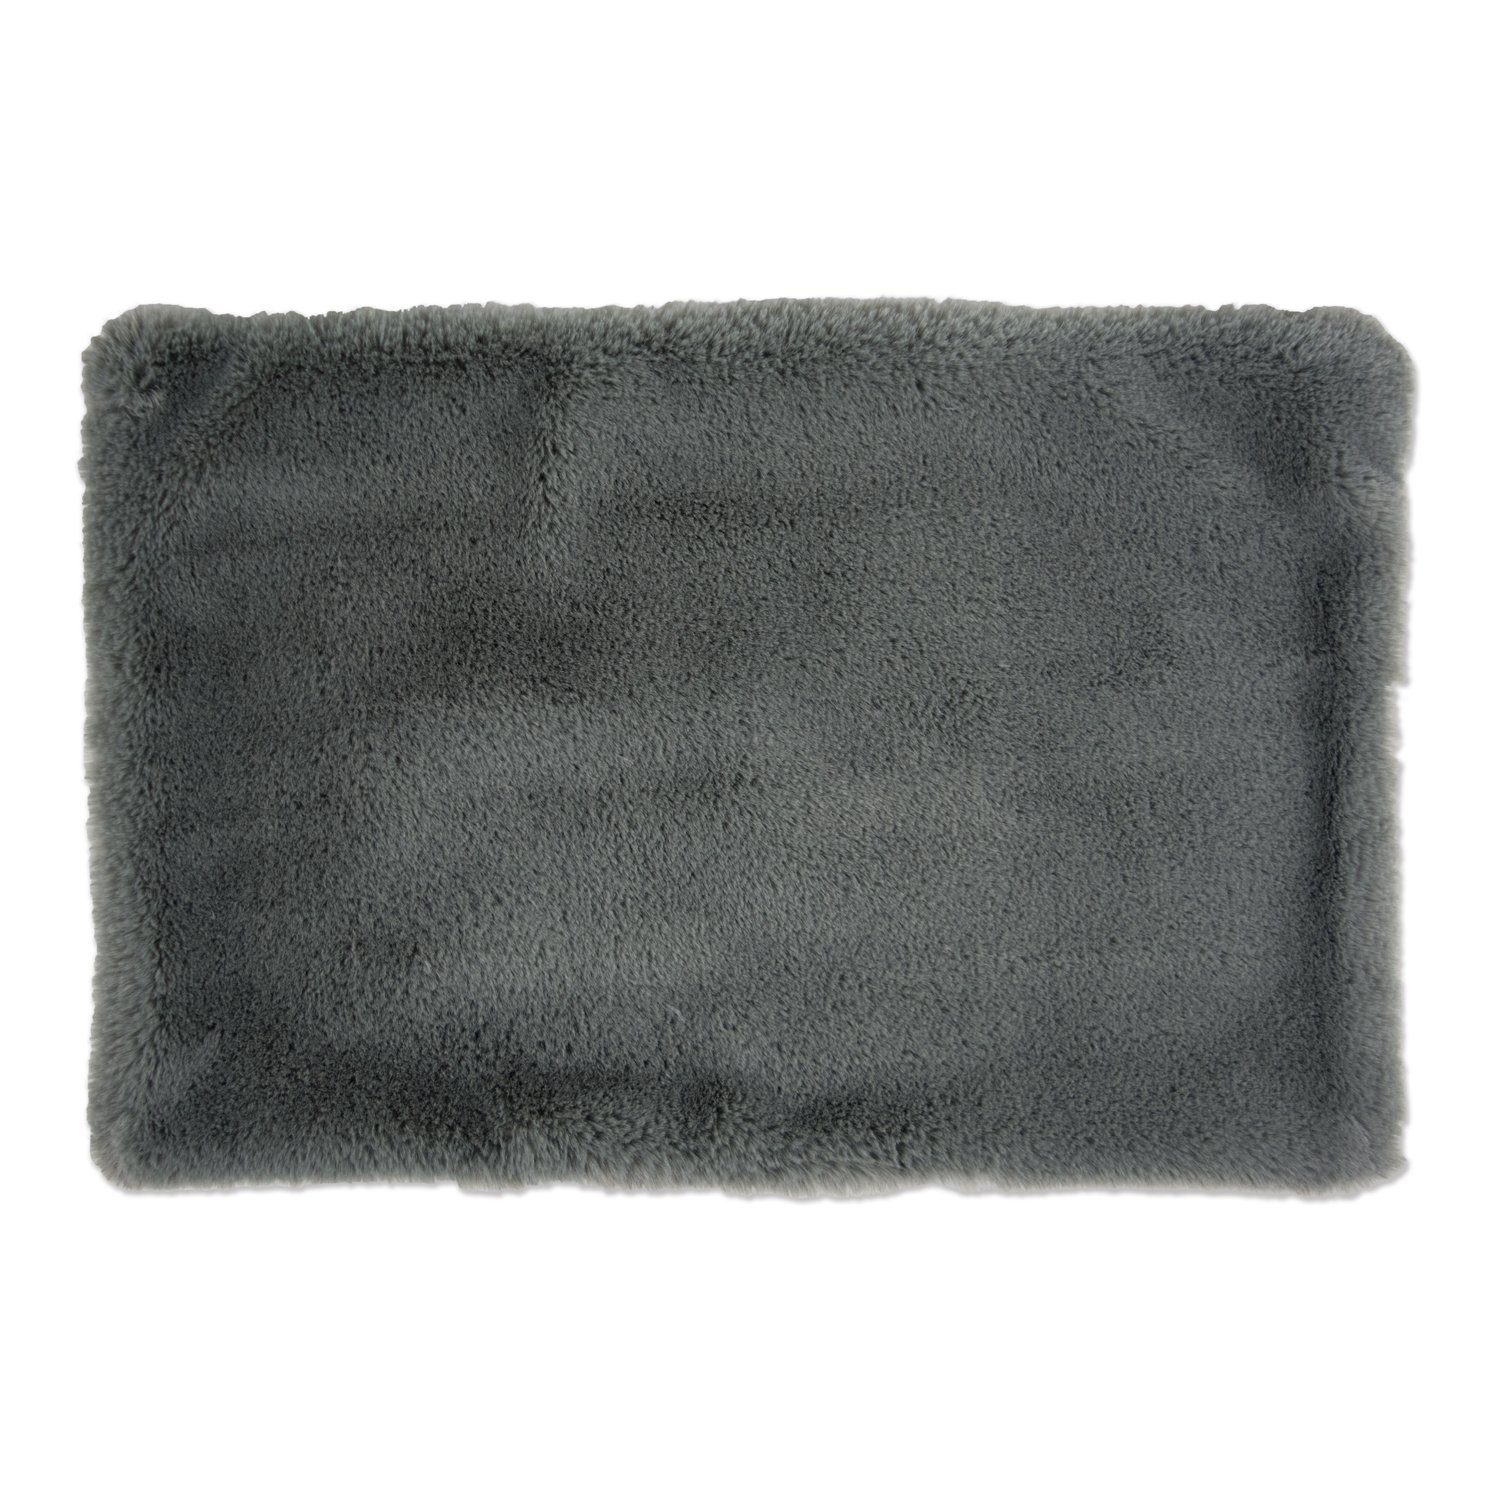 DII Bone Dry Faux Fur Silky Soft XXX-Large Pet Cage Liner for Dogs & Cats, 29X48'', Perfect for Kennels, Car Trips, Floors, Crates-Gray